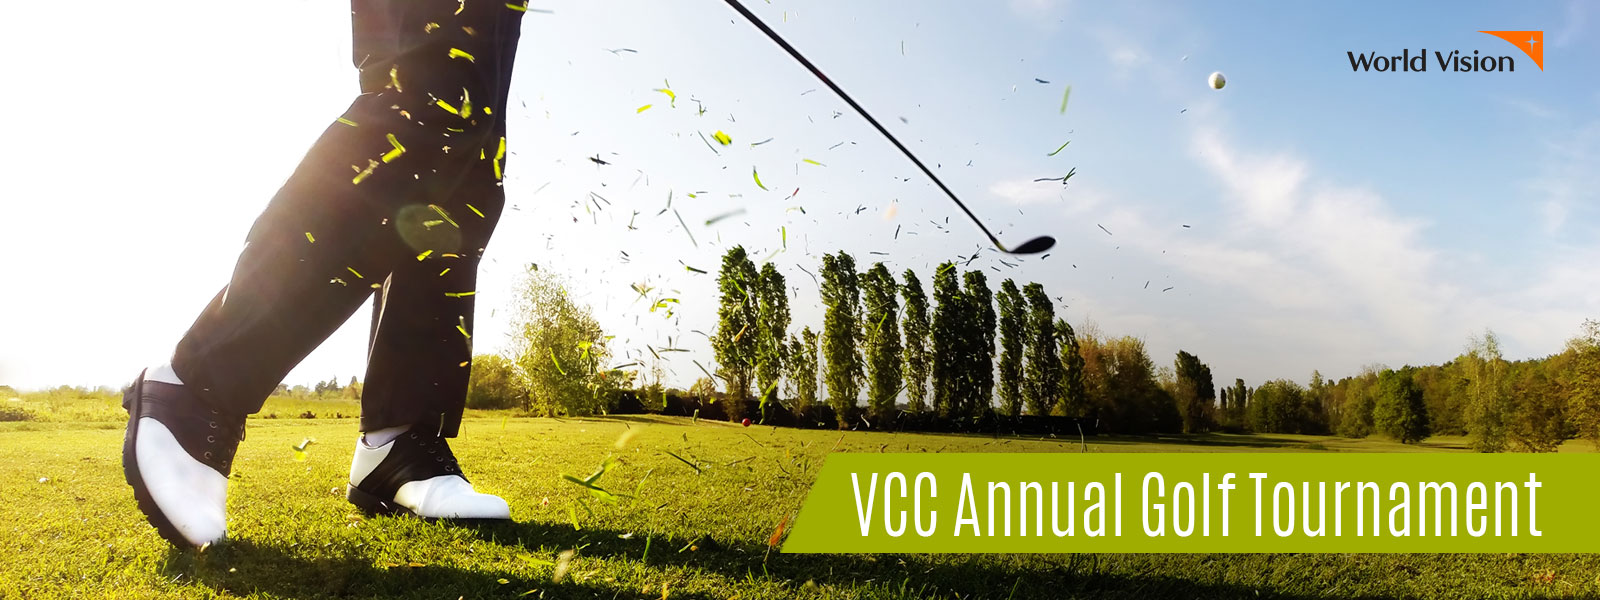 VCC_Golf_Website_Banner_1600x600px.jpg